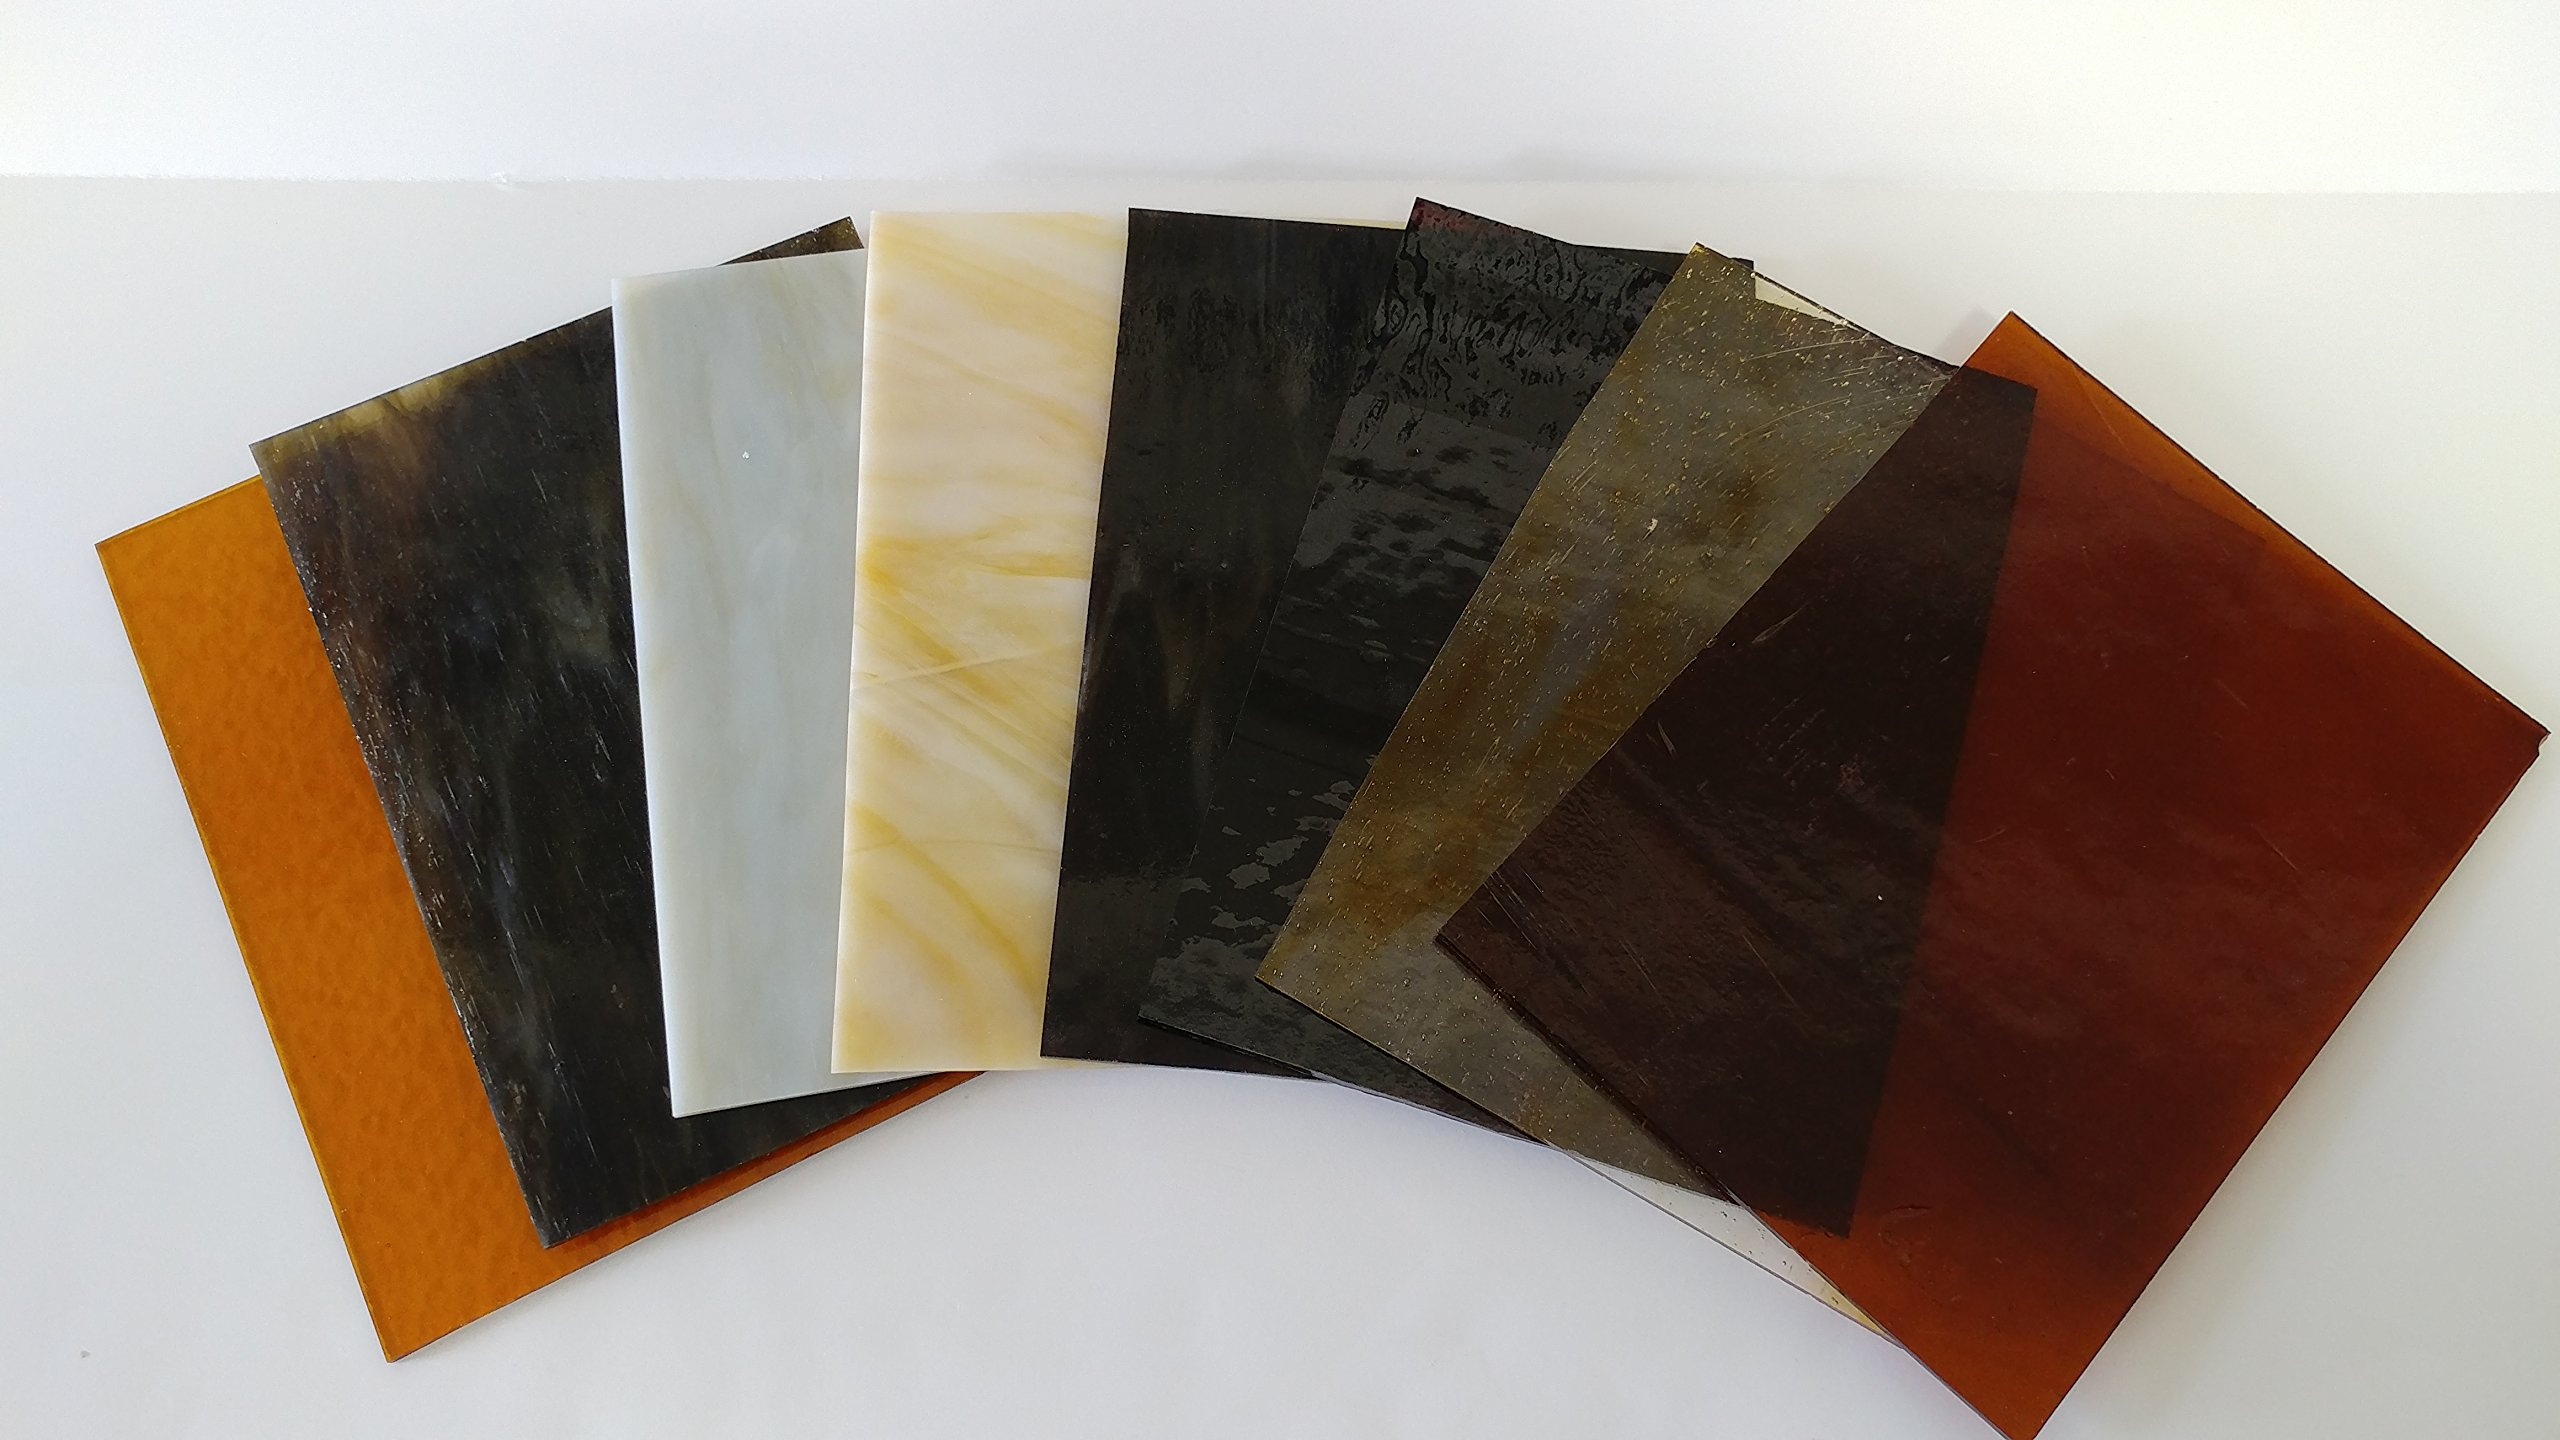 6''x8'' Amber Variety Stained Glass Pack By Stallings Stained Glass by Stallings Stained Glass